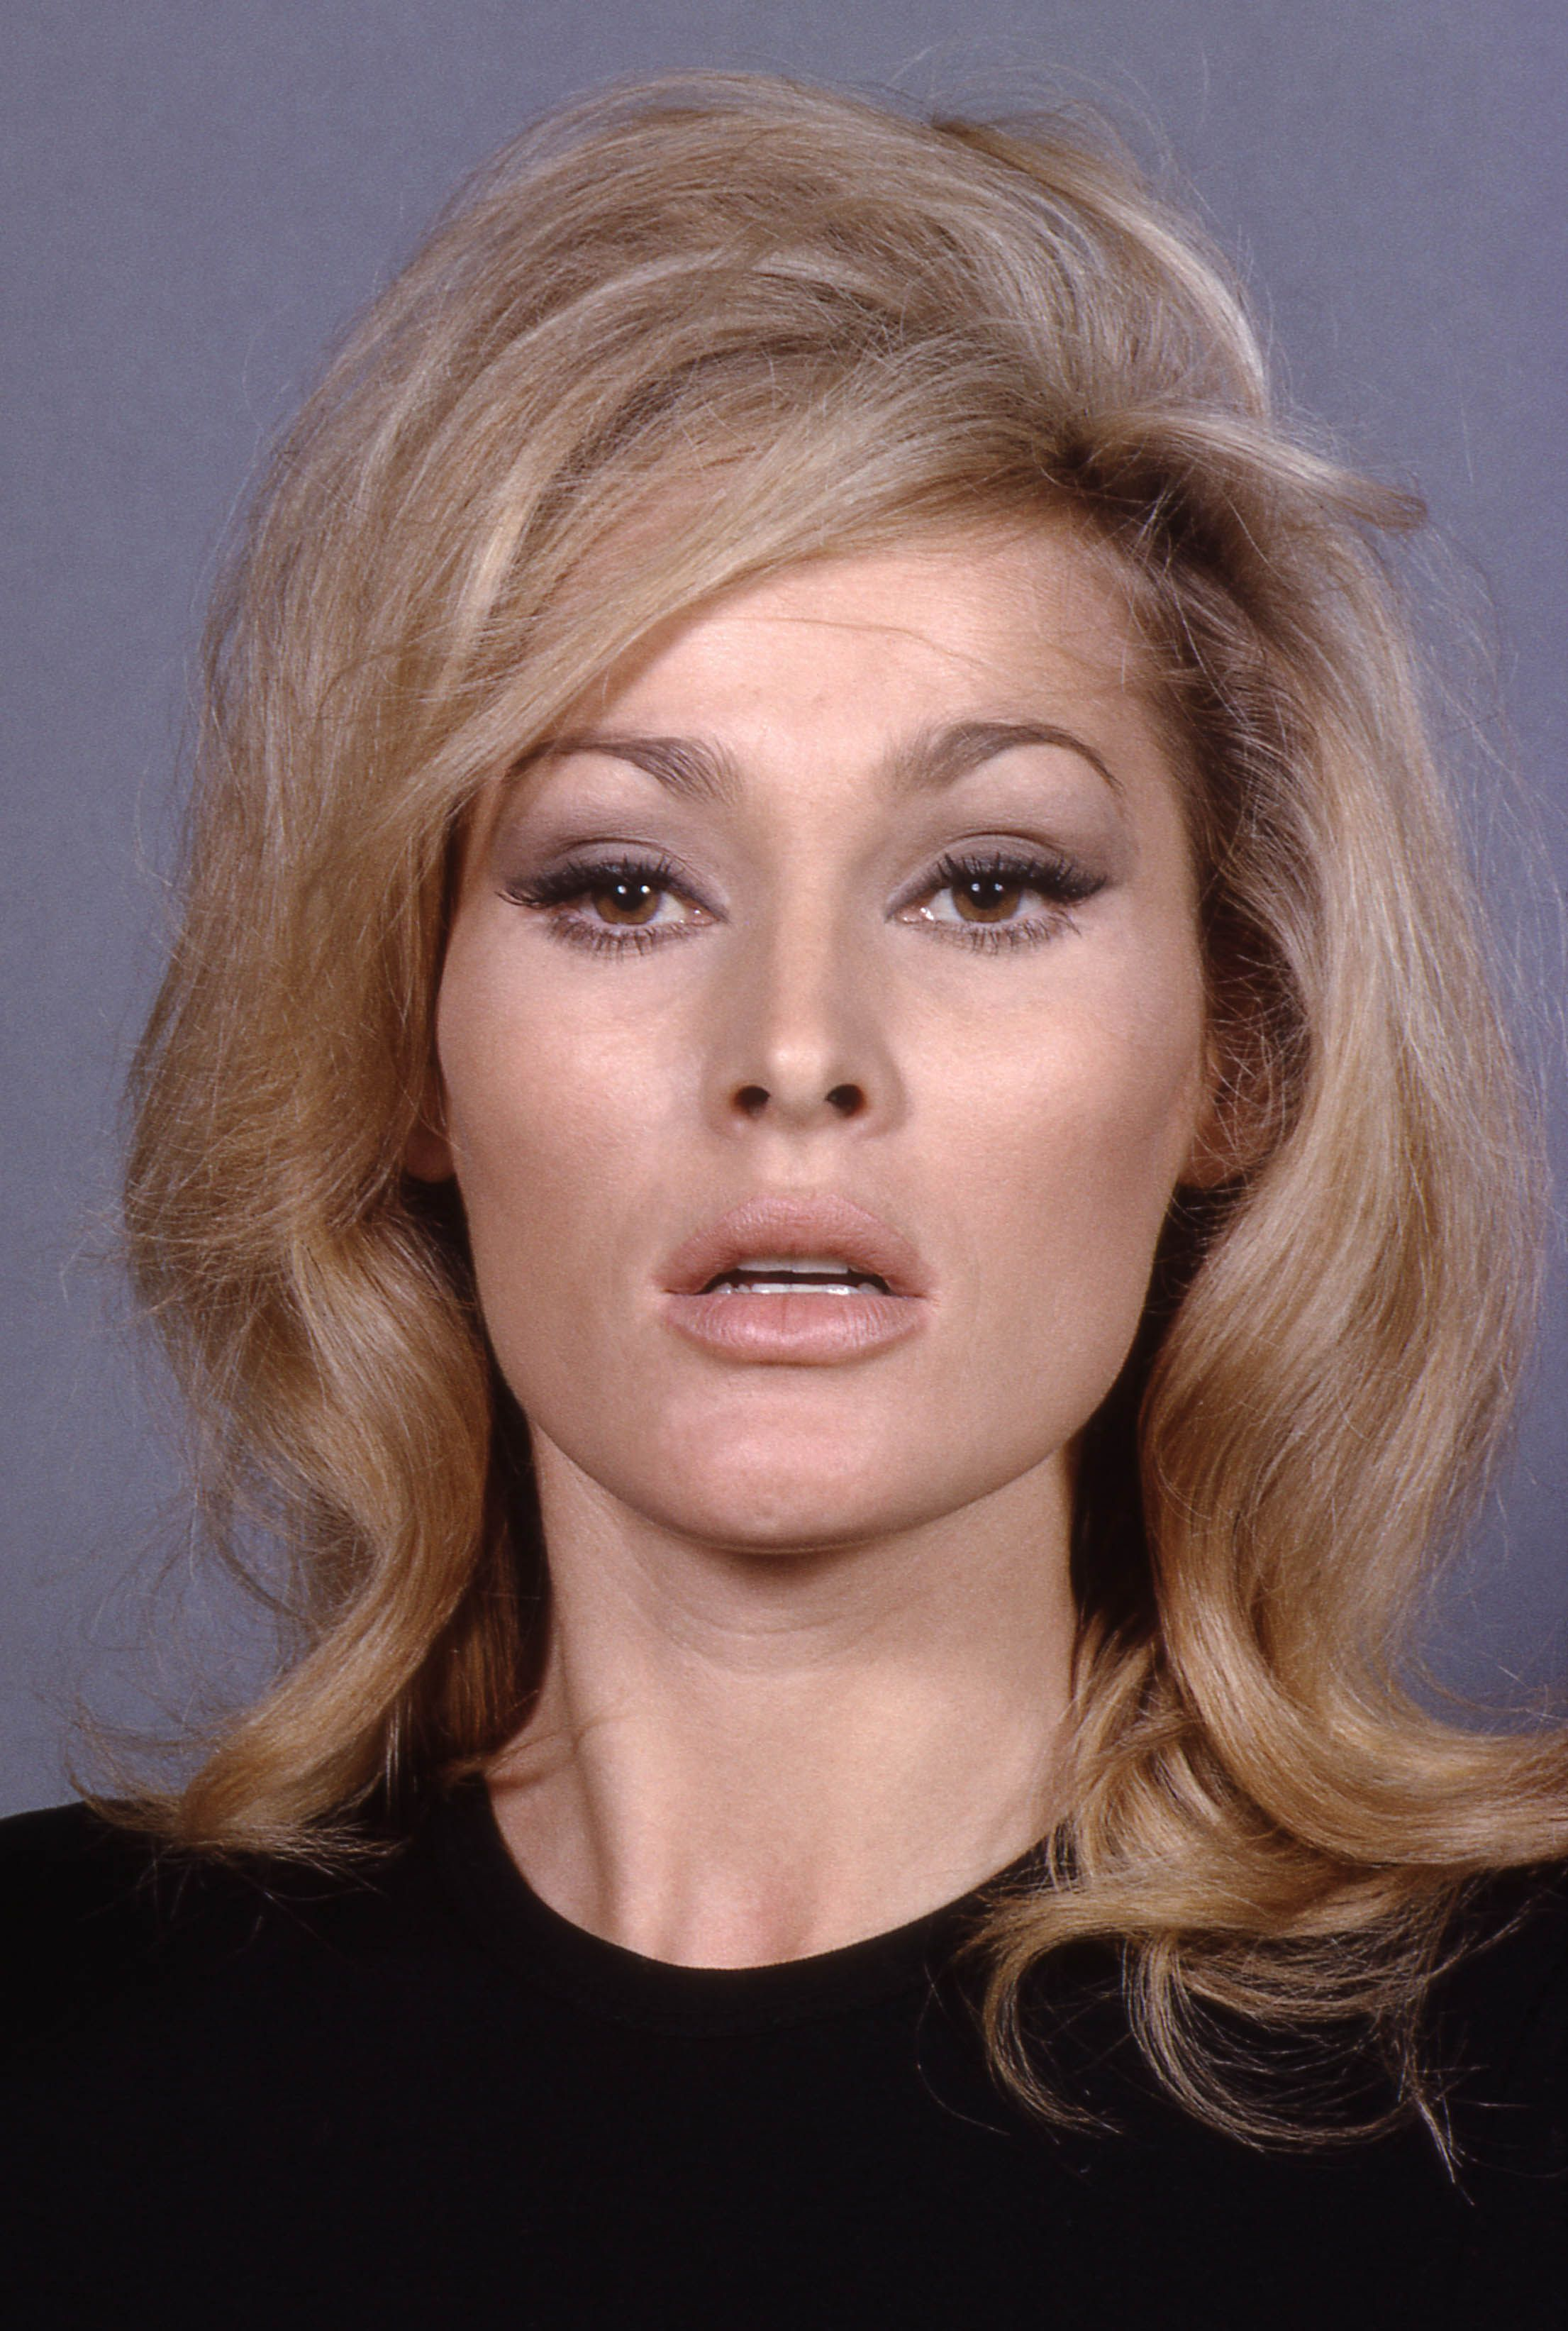 Discussion on this topic: Ursula Andress Bond Girl Inspired Makeup, ursula-andress-bond-girl-inspired-makeup/